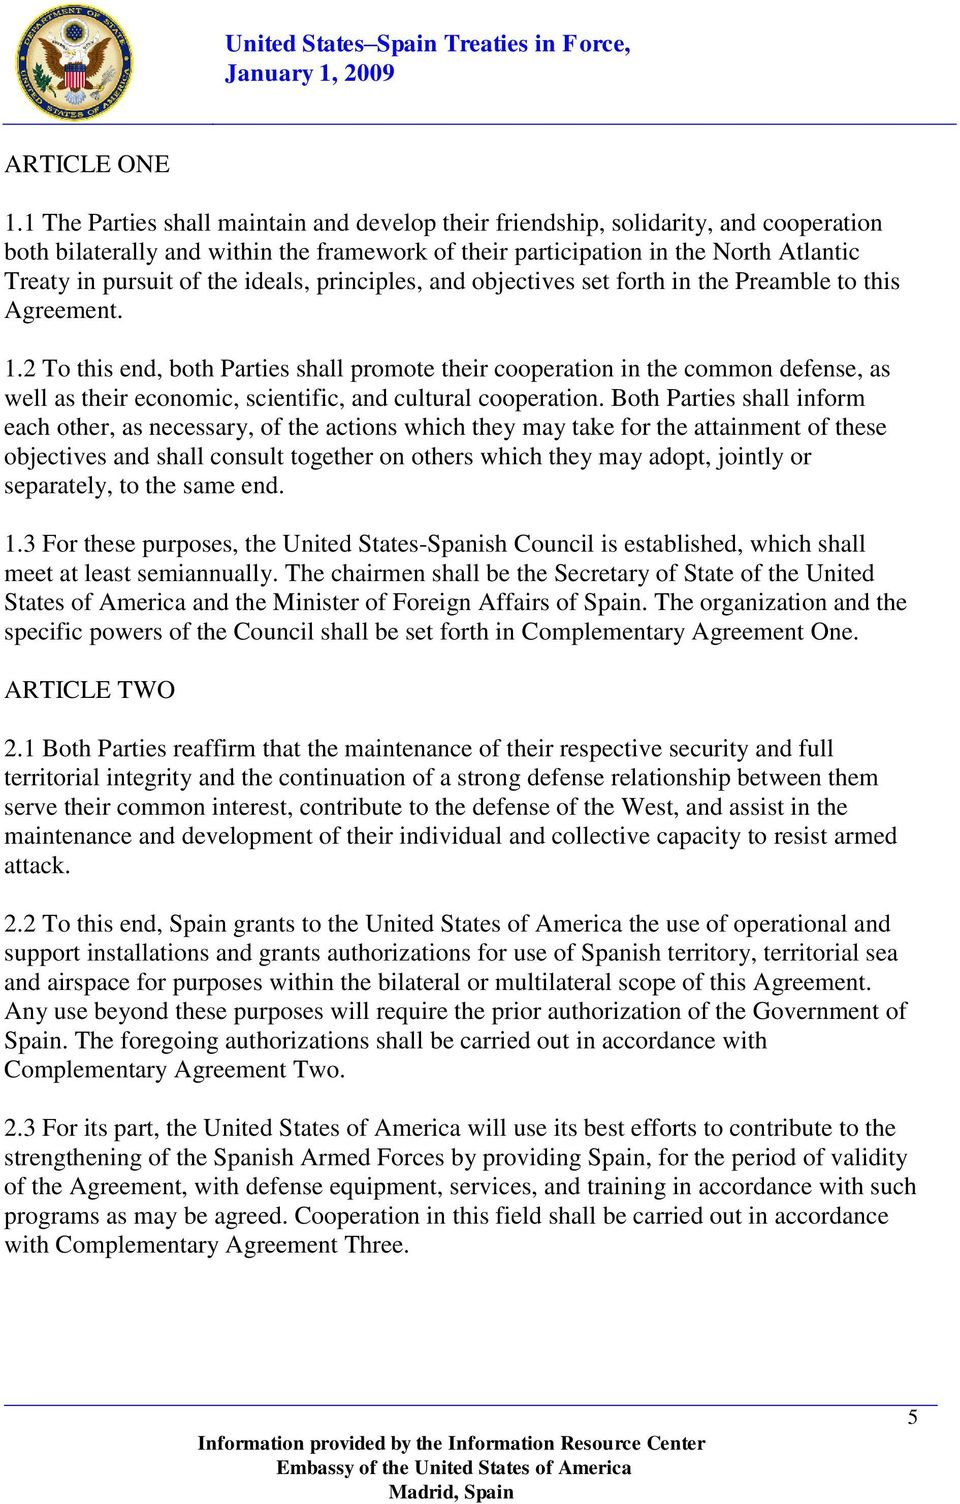 ideals, principles, and objectives set forth in the Preamble to this Agreement. 1.